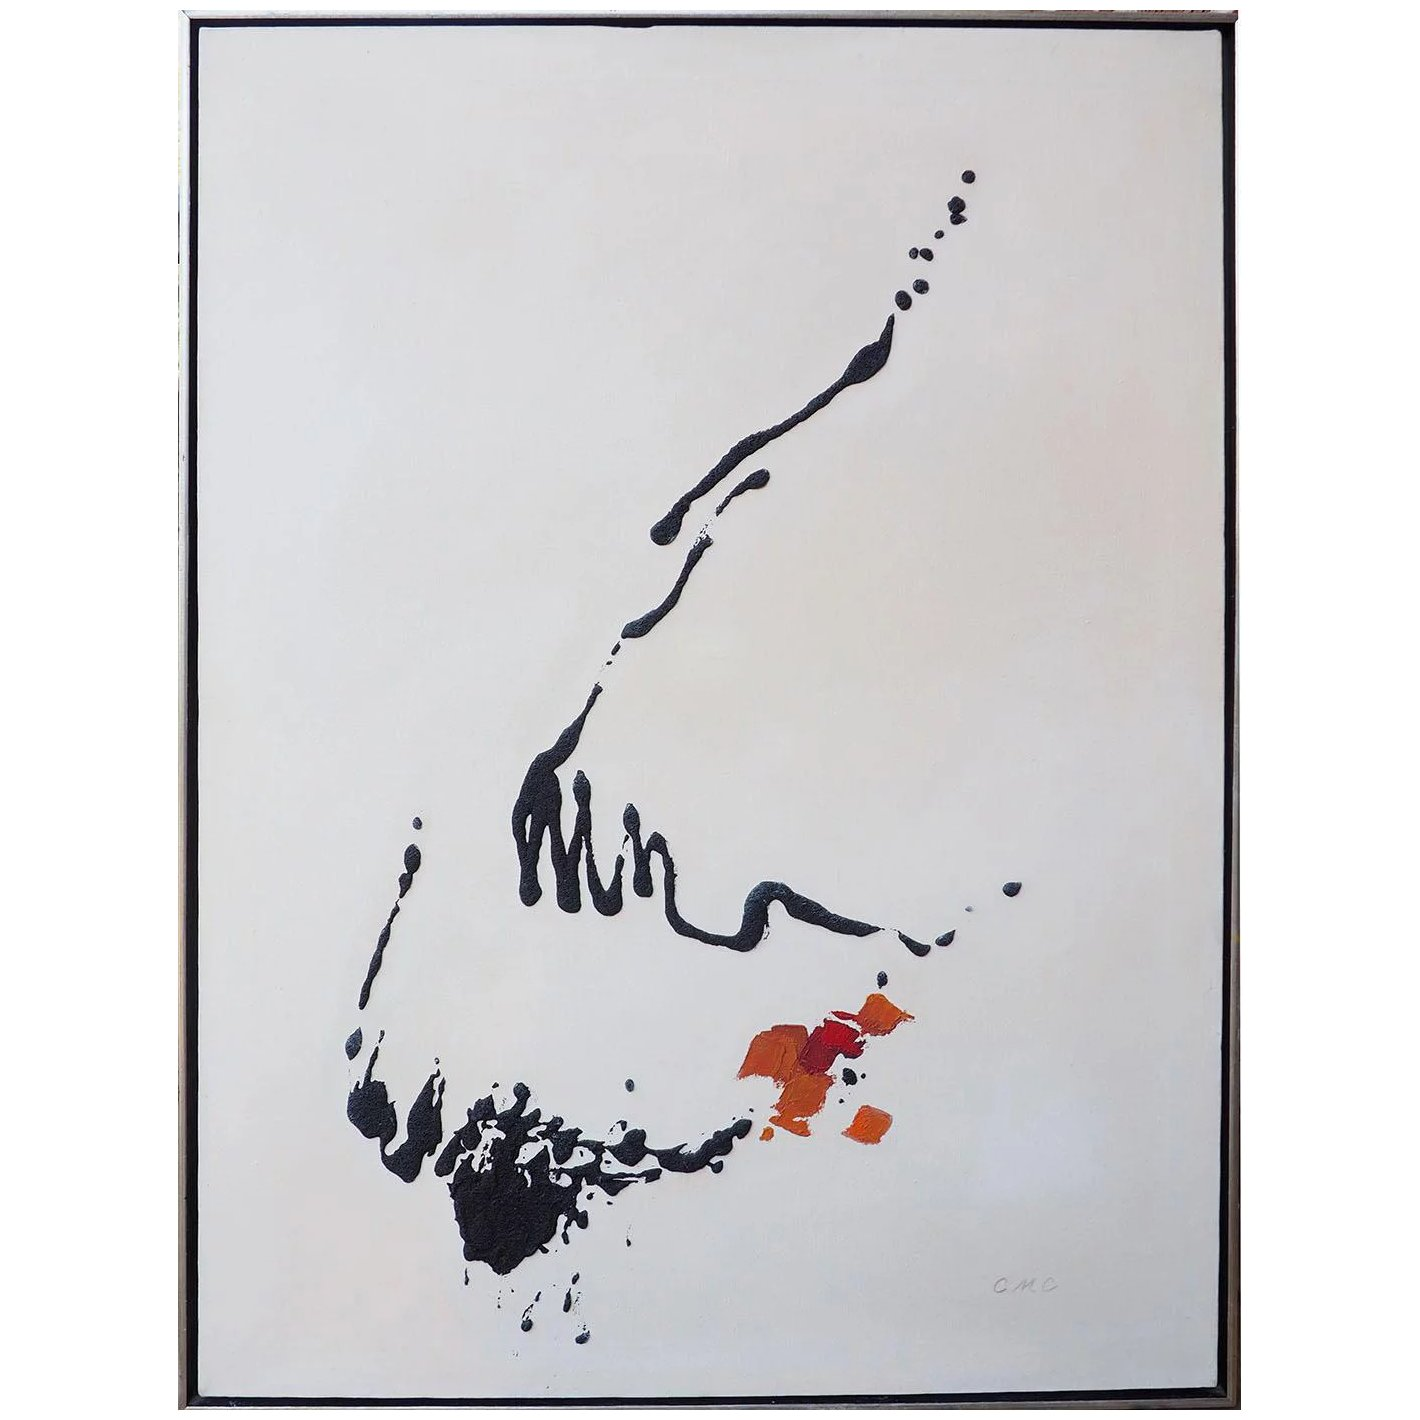 Picture of: Vintage Abstract Mid Century Modern Painting By Carla Maria Casagrande Artnotch Ruby Lane